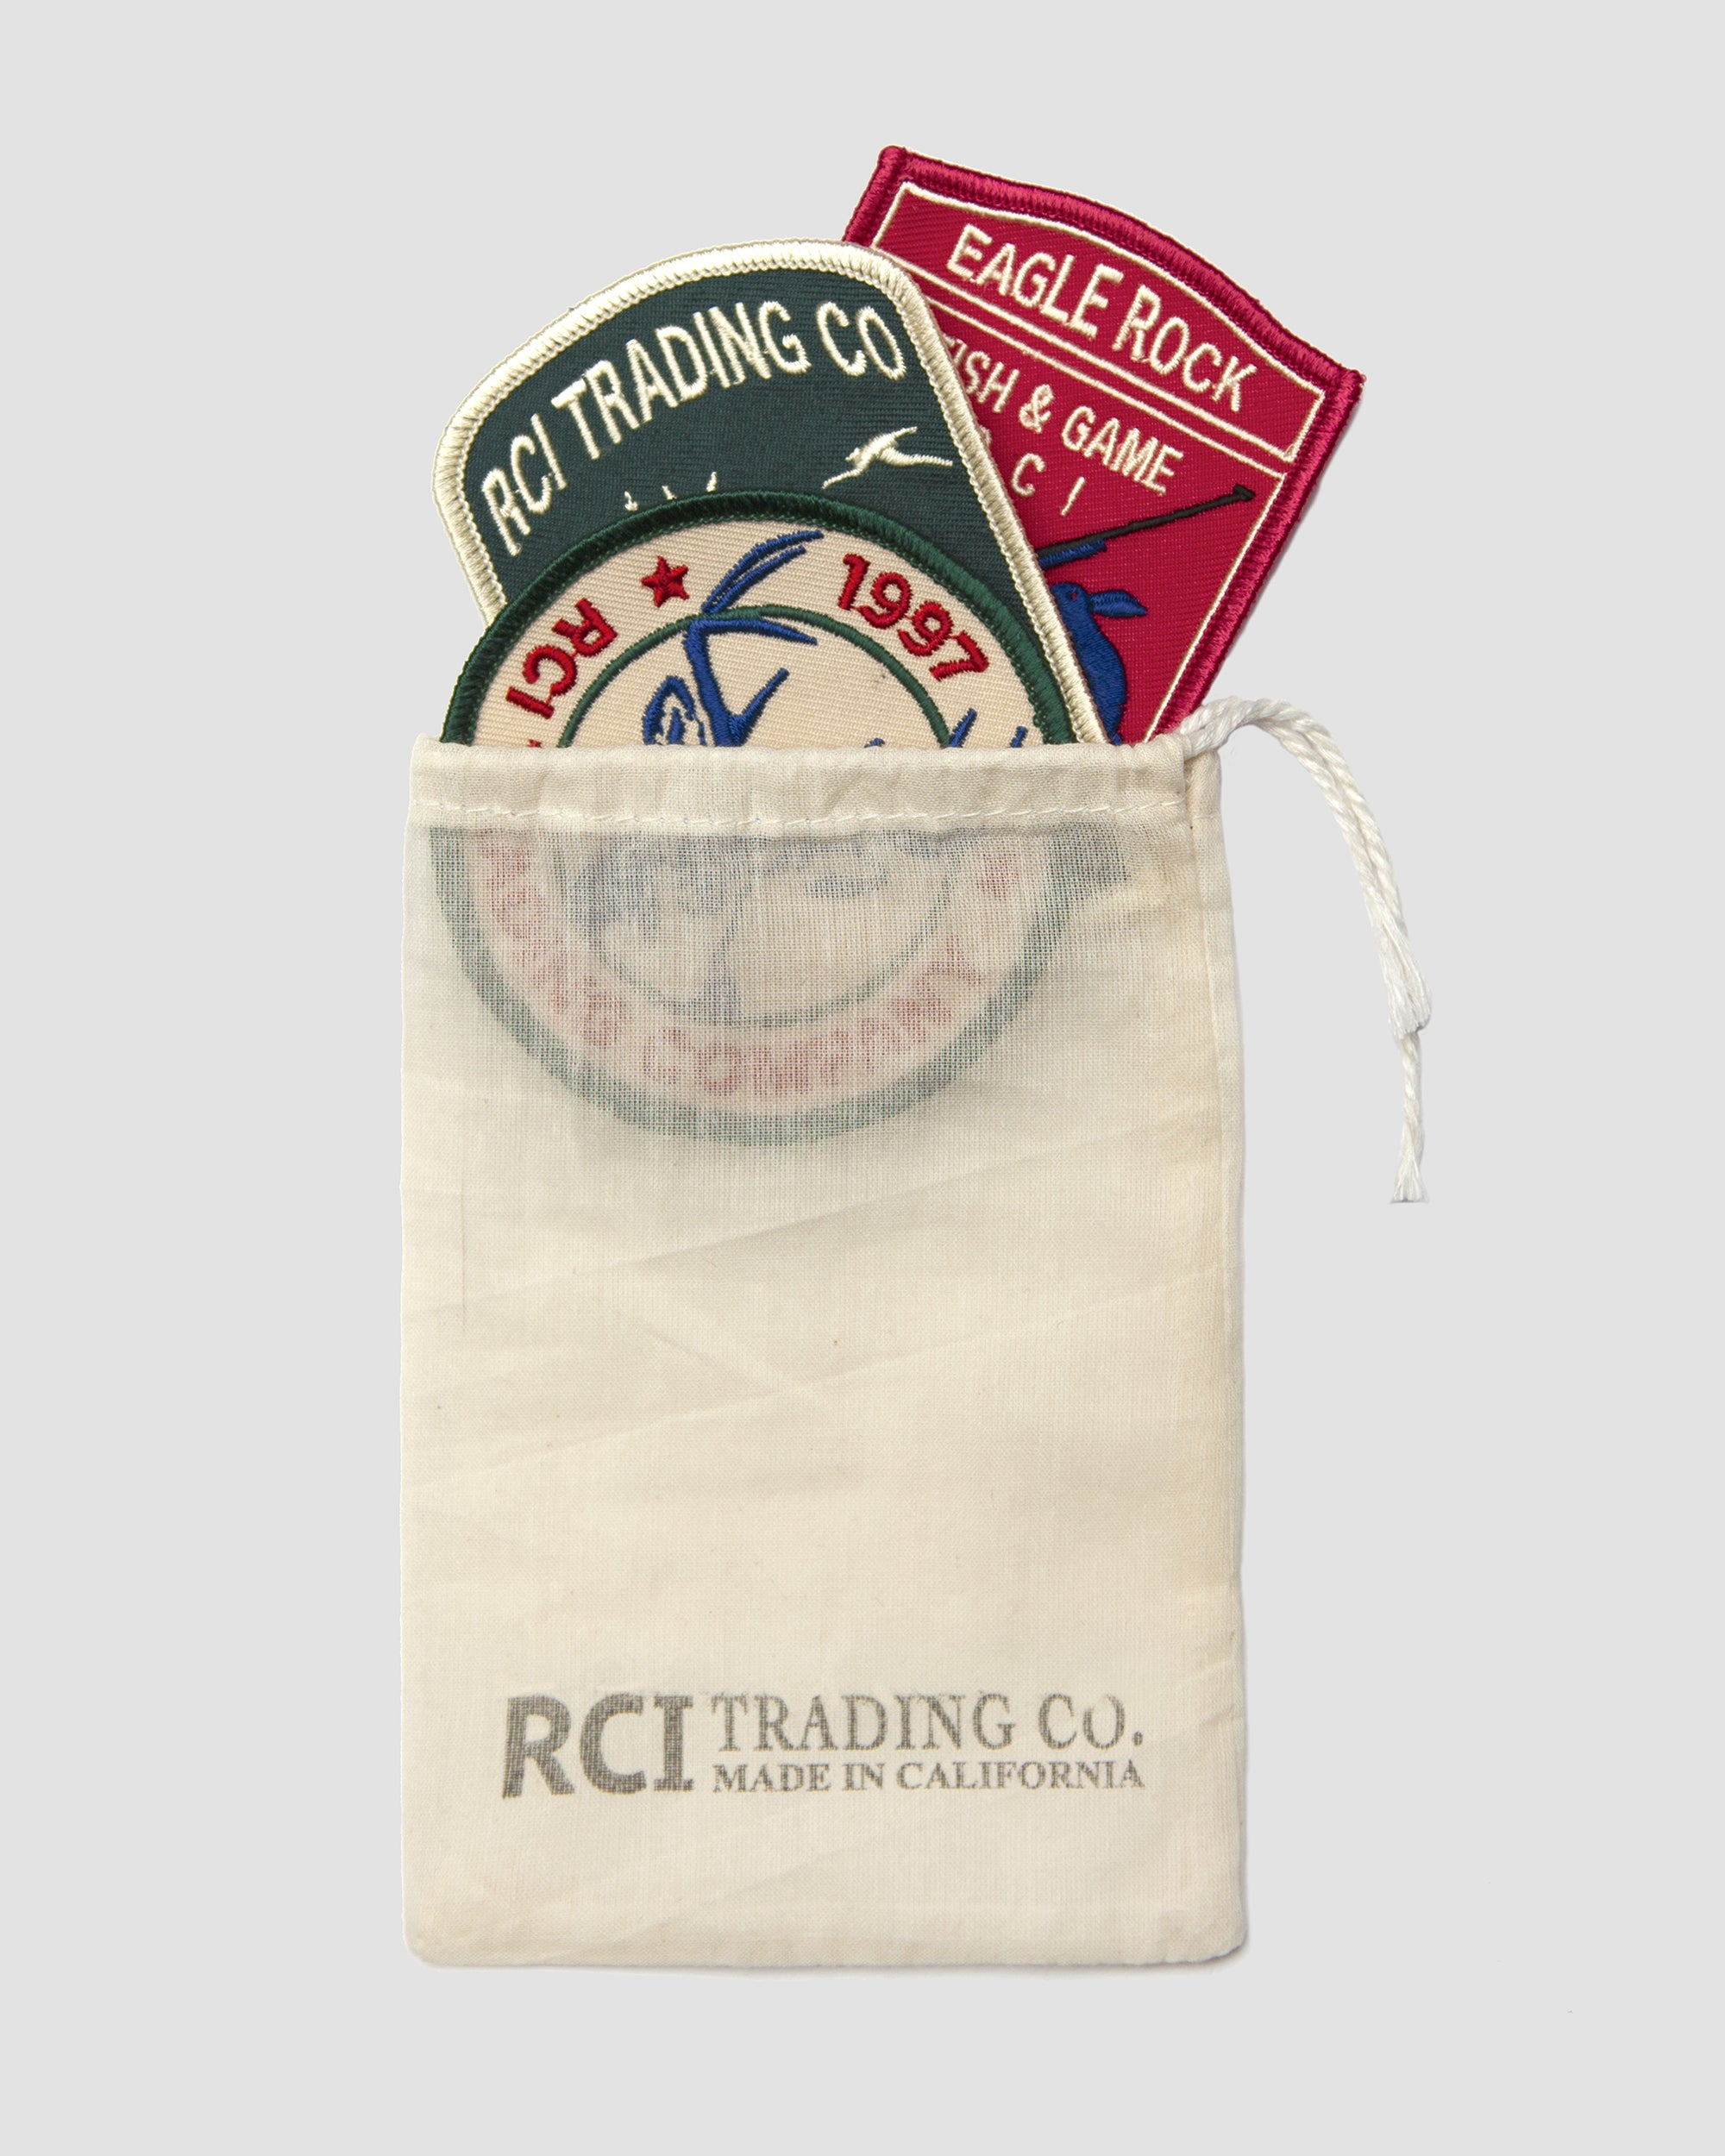 RCI Embroidered Patches (3 Pack)